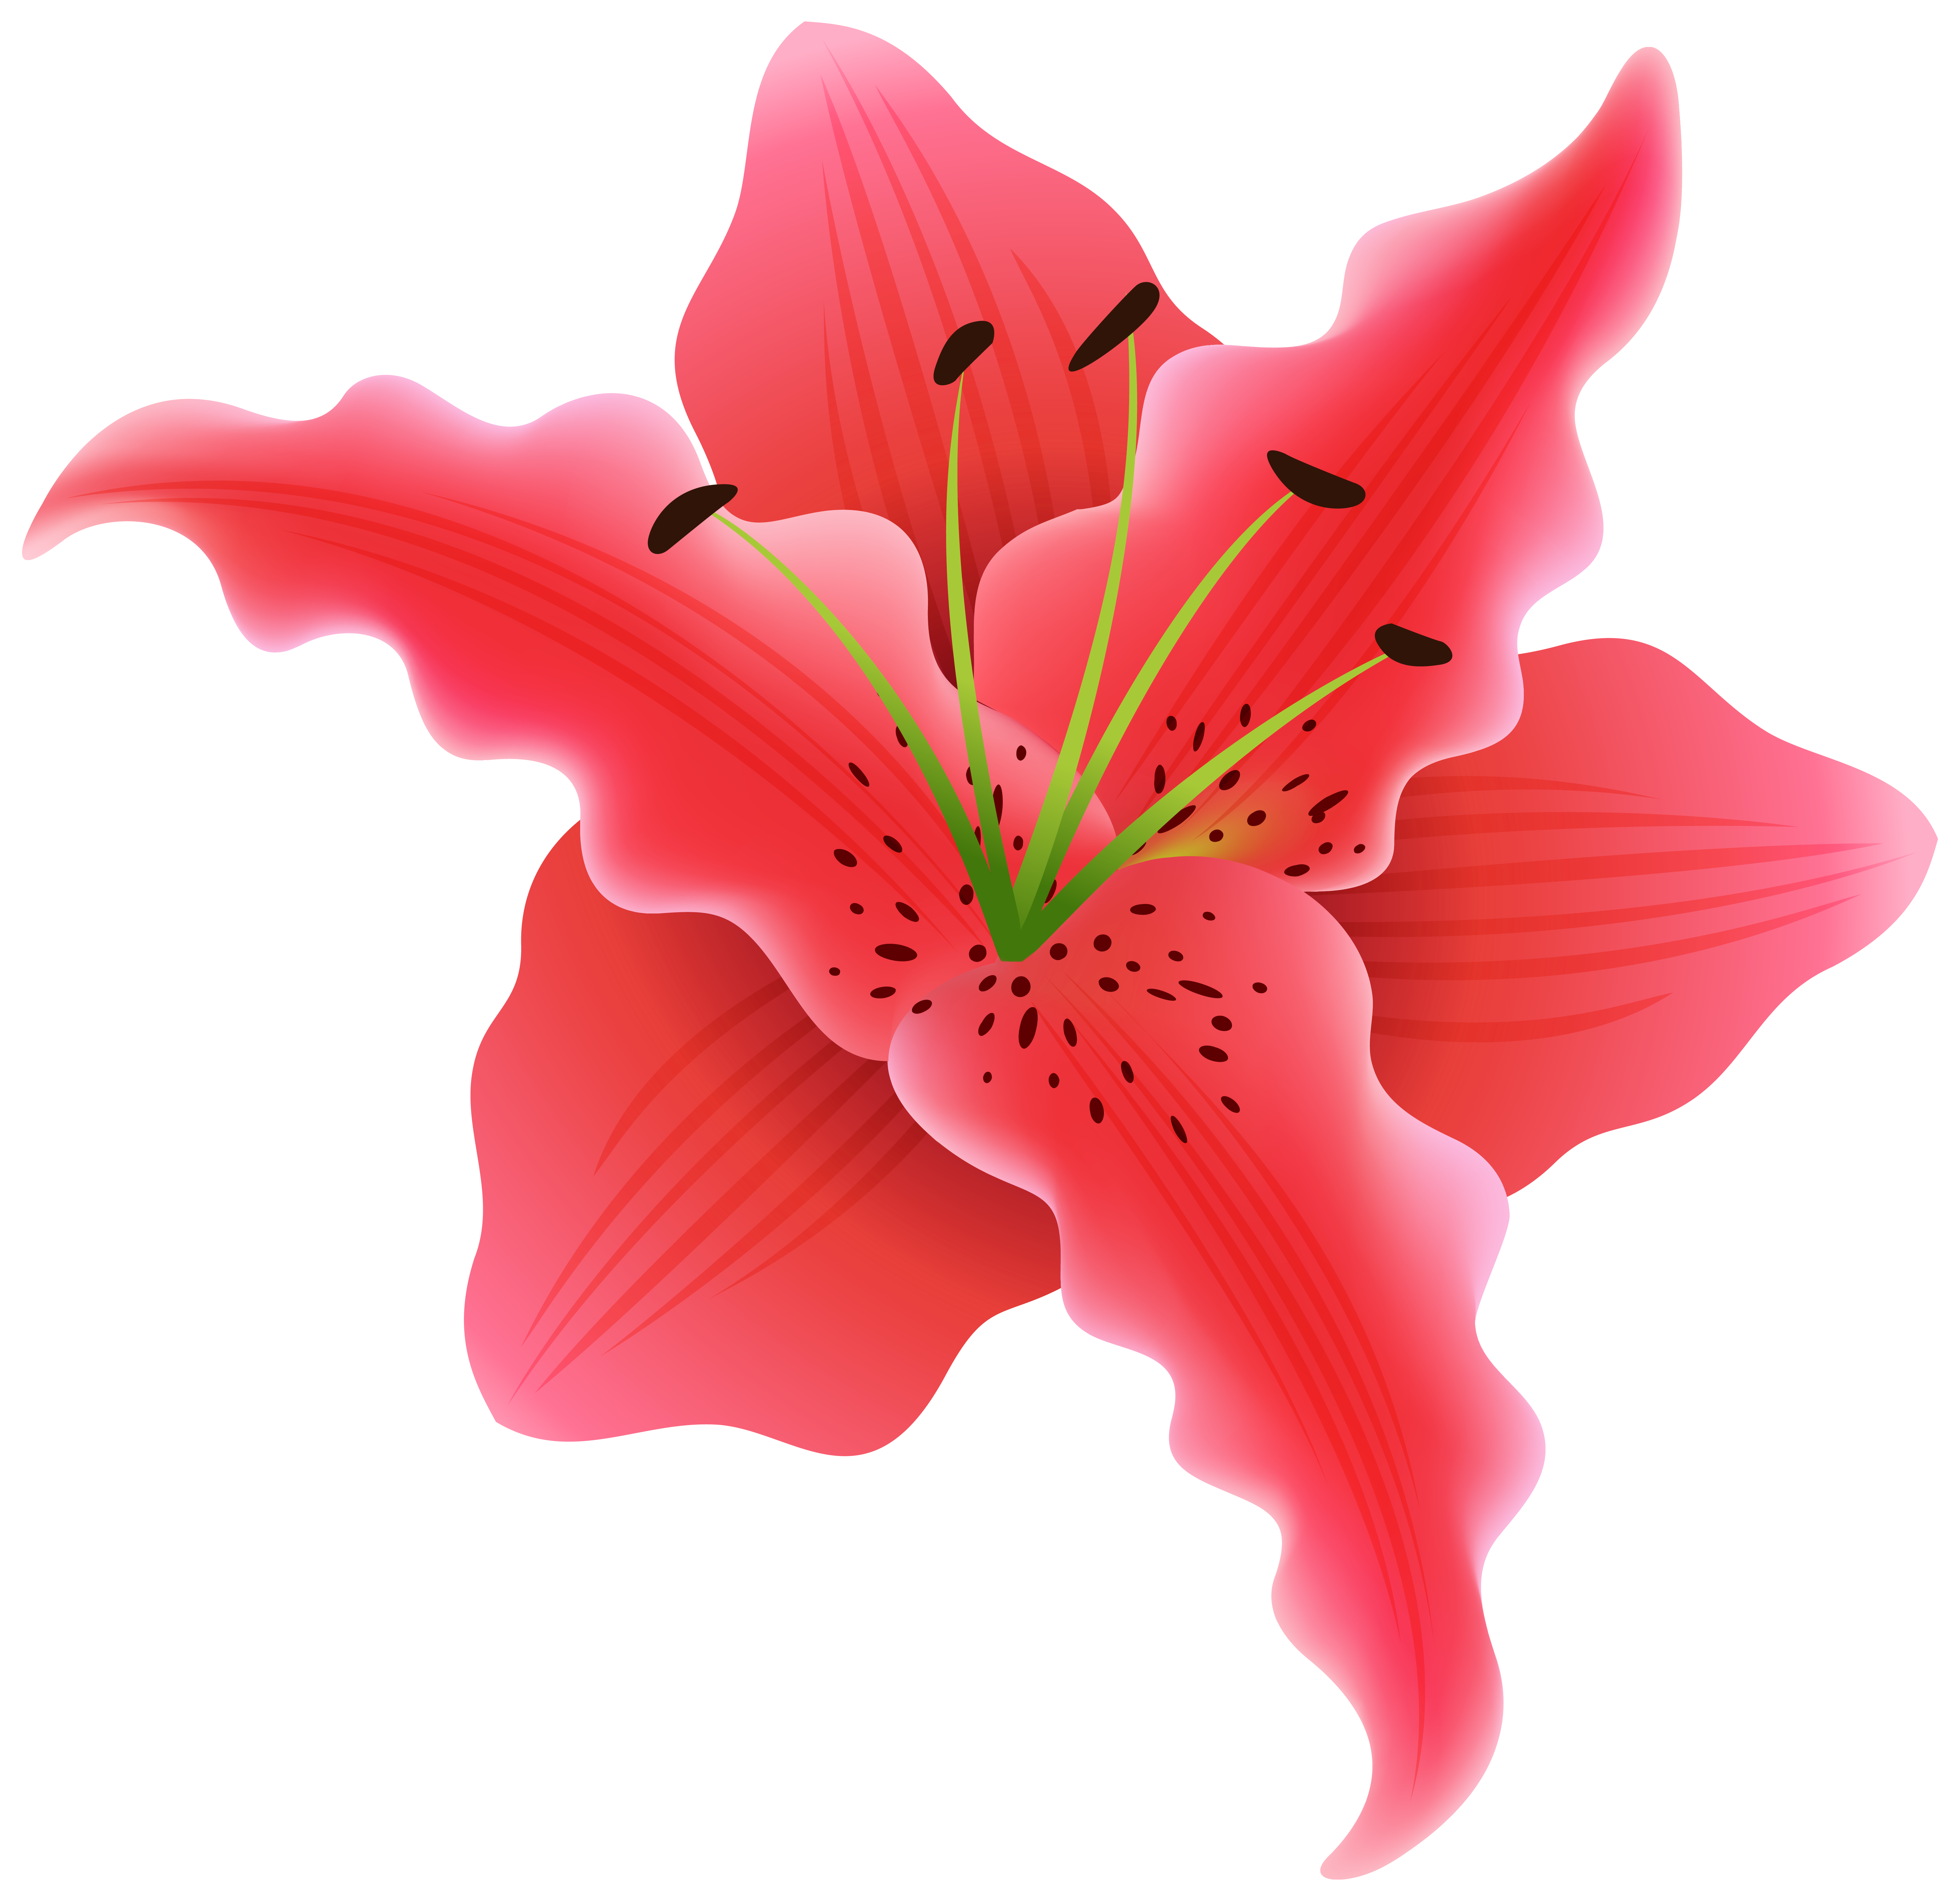 Hair flower png. Beautiful exotic clipart image